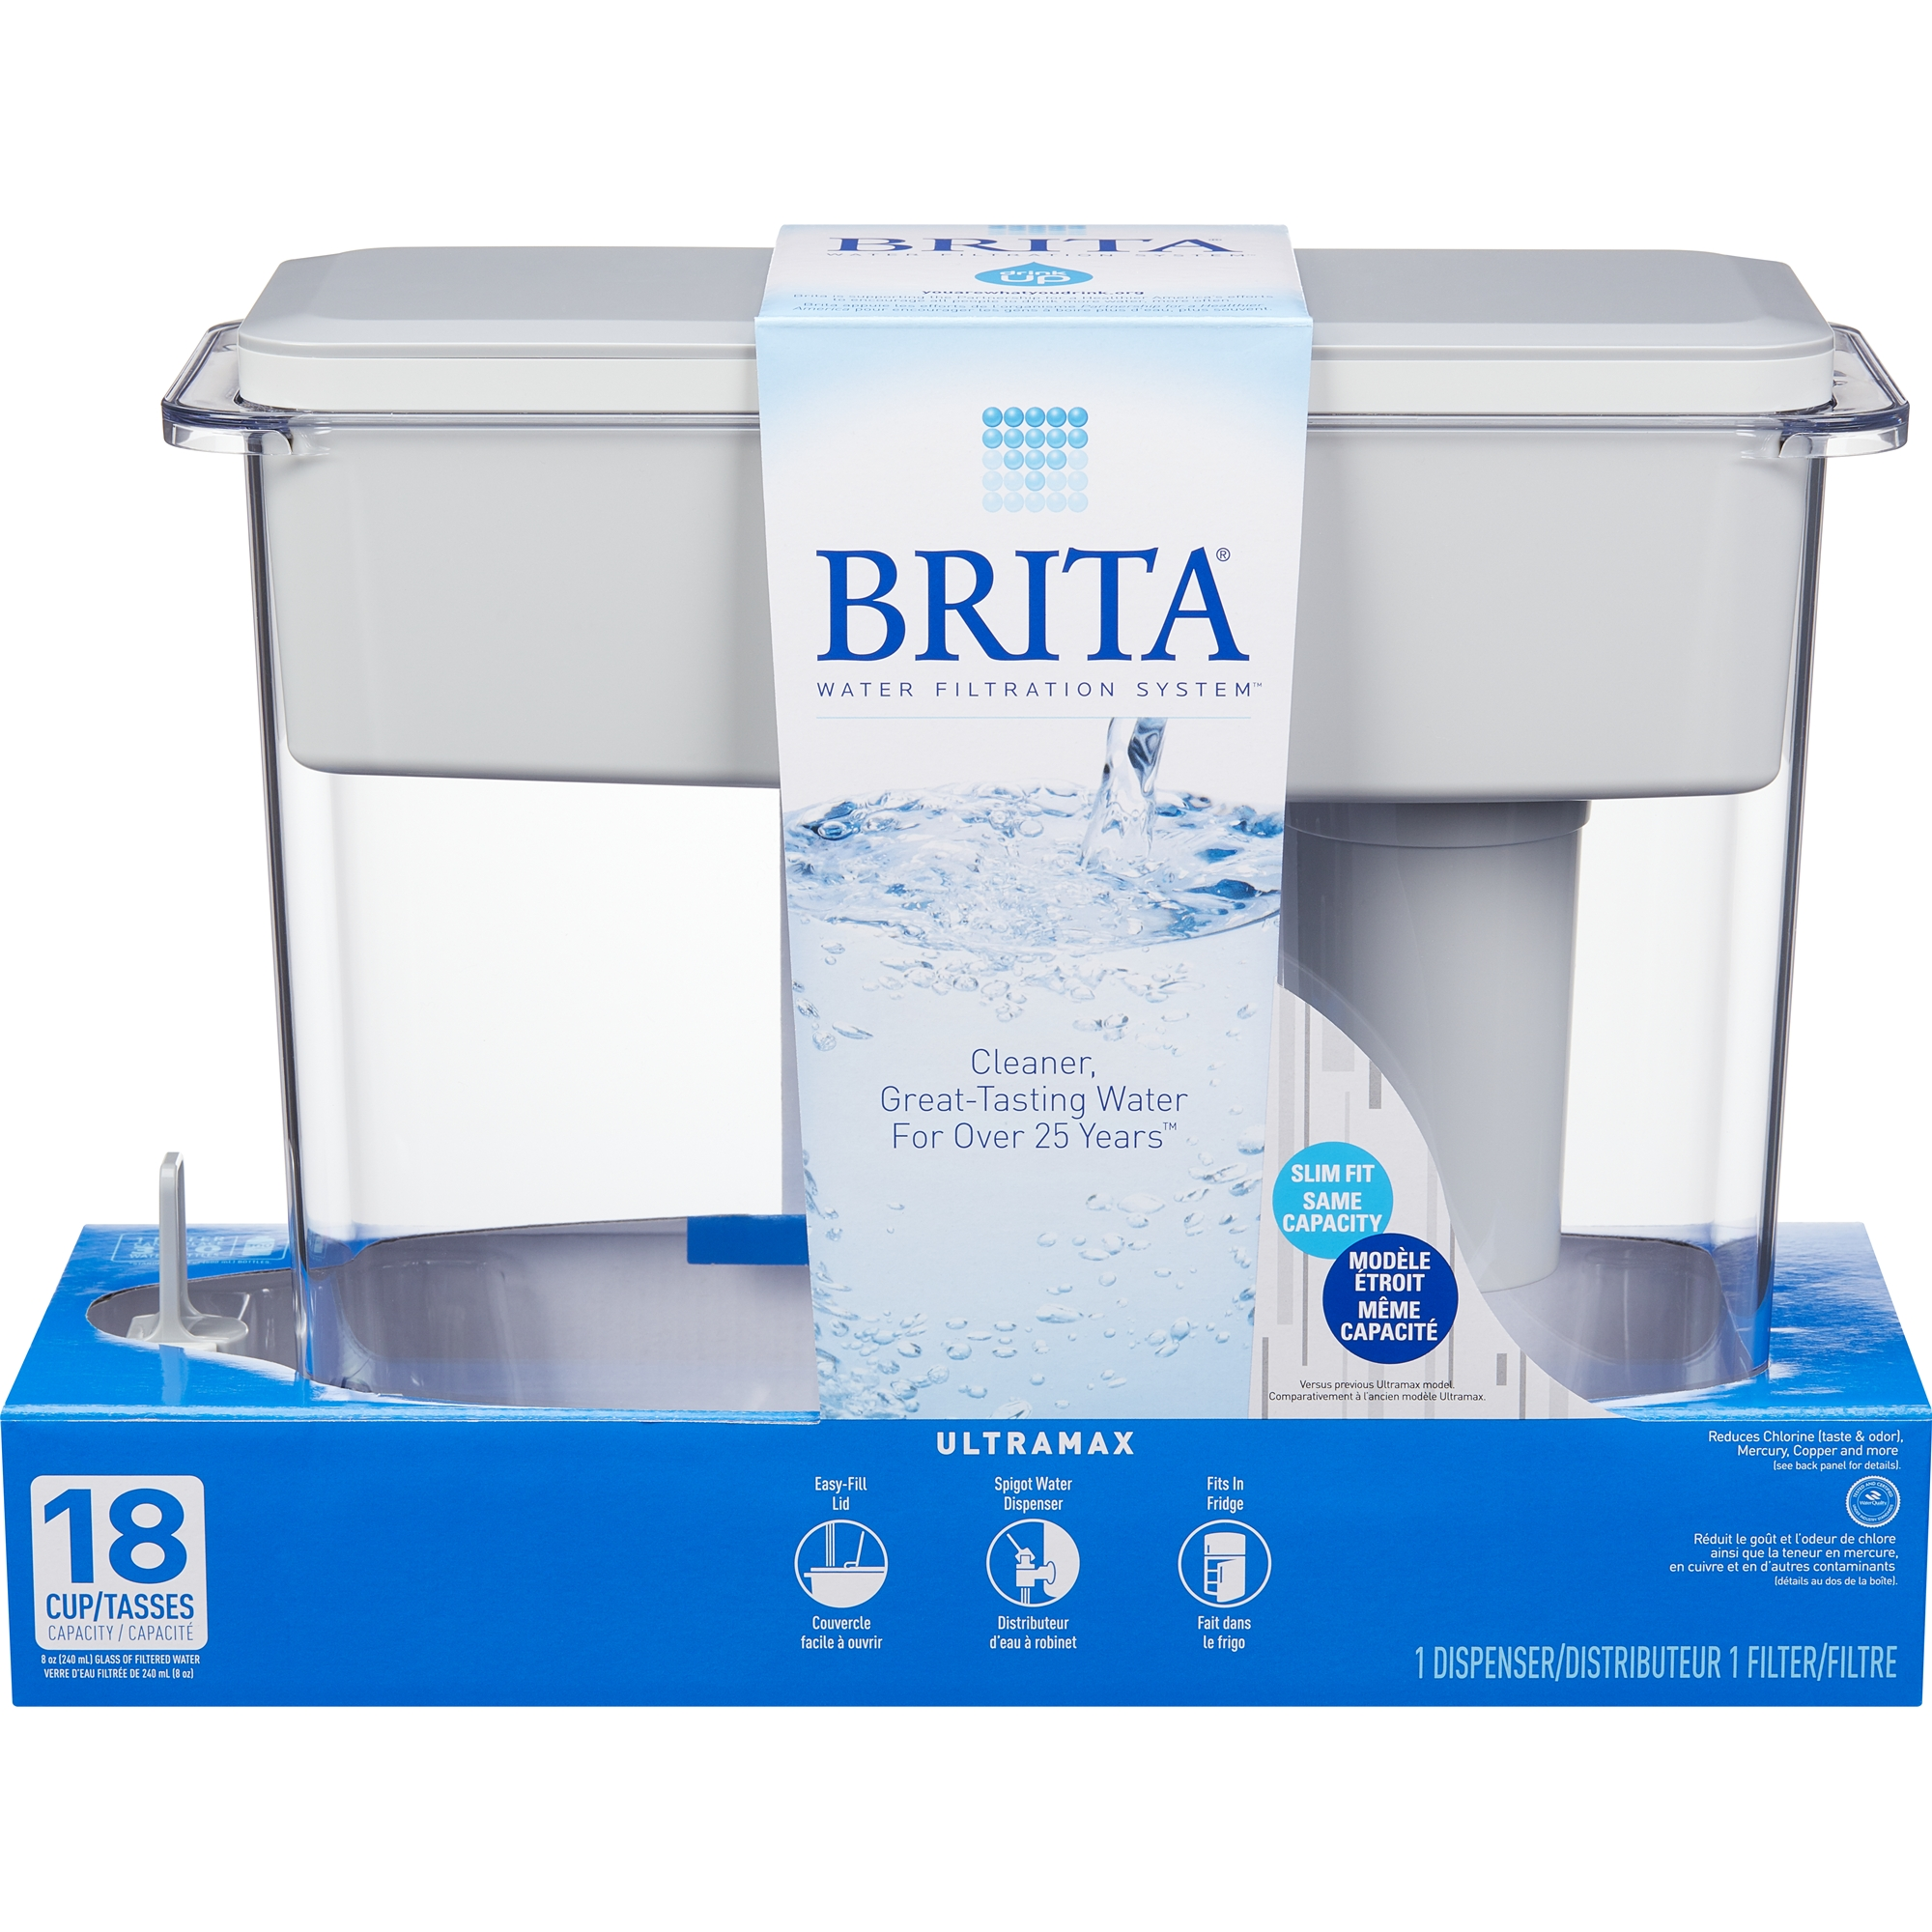 How To Filter Water At Home Brita 18 Cup Ultramax Water Dispenser With 1 Filter Bpa Free